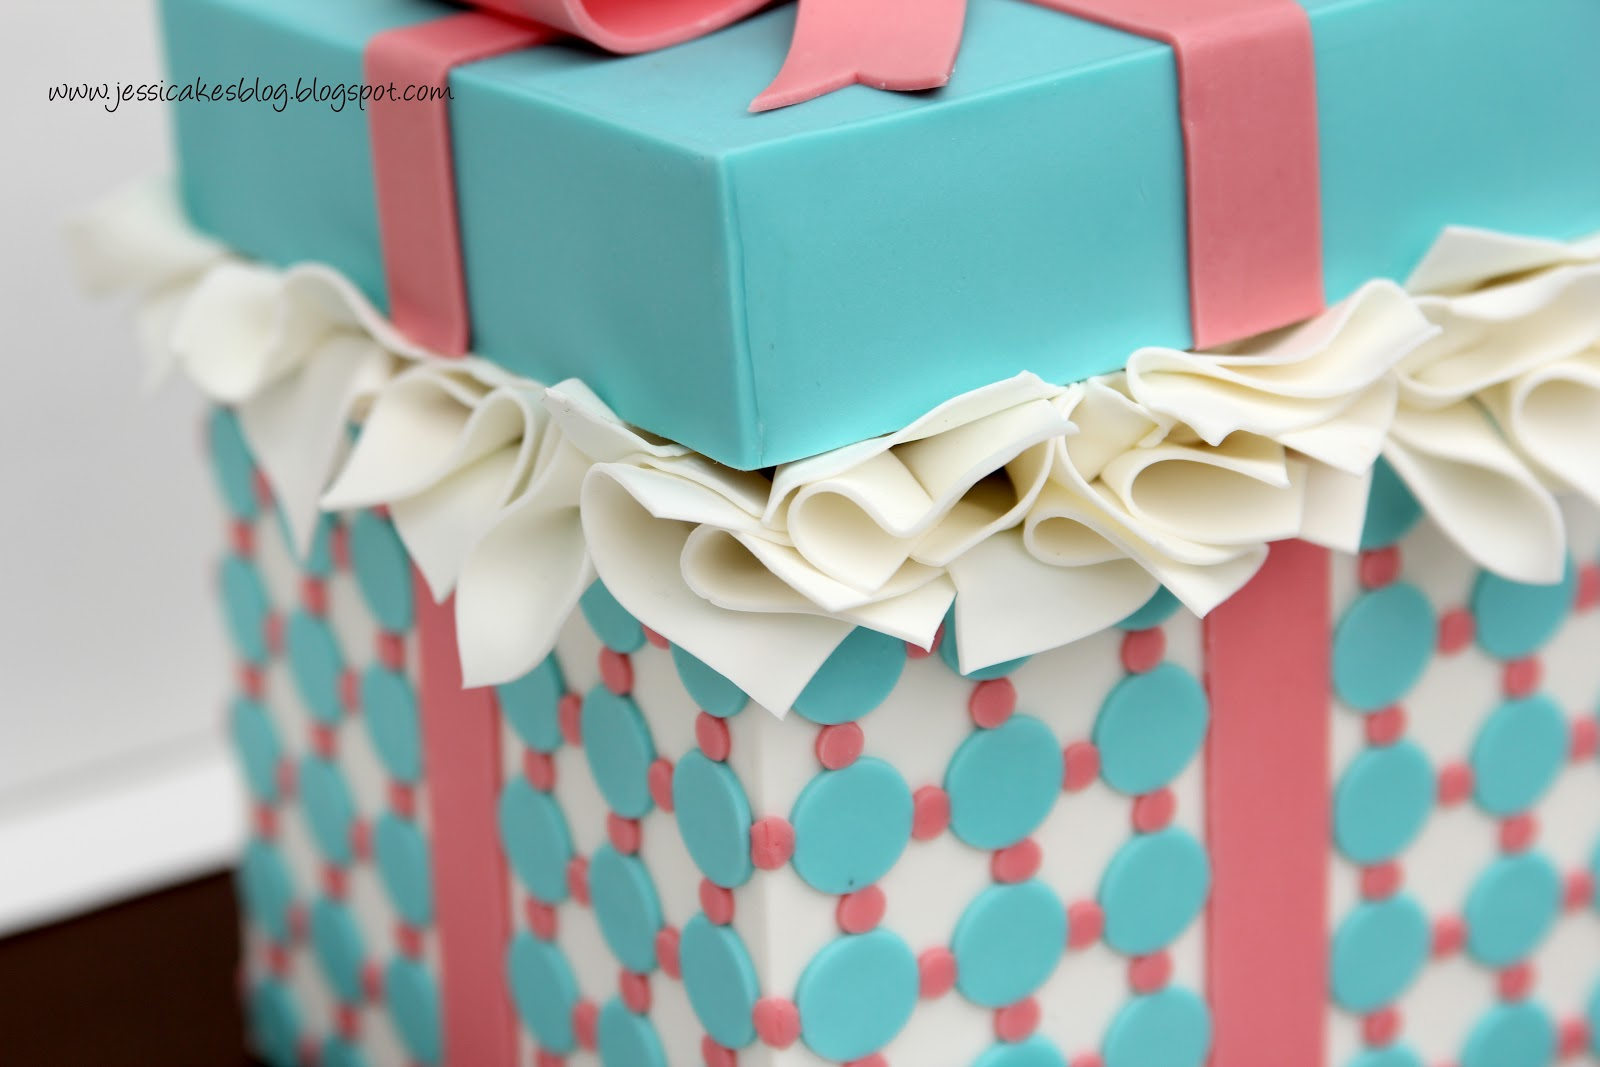 Gift box cake tutorial jessica harris cake design gift box cake tutorial negle Image collections